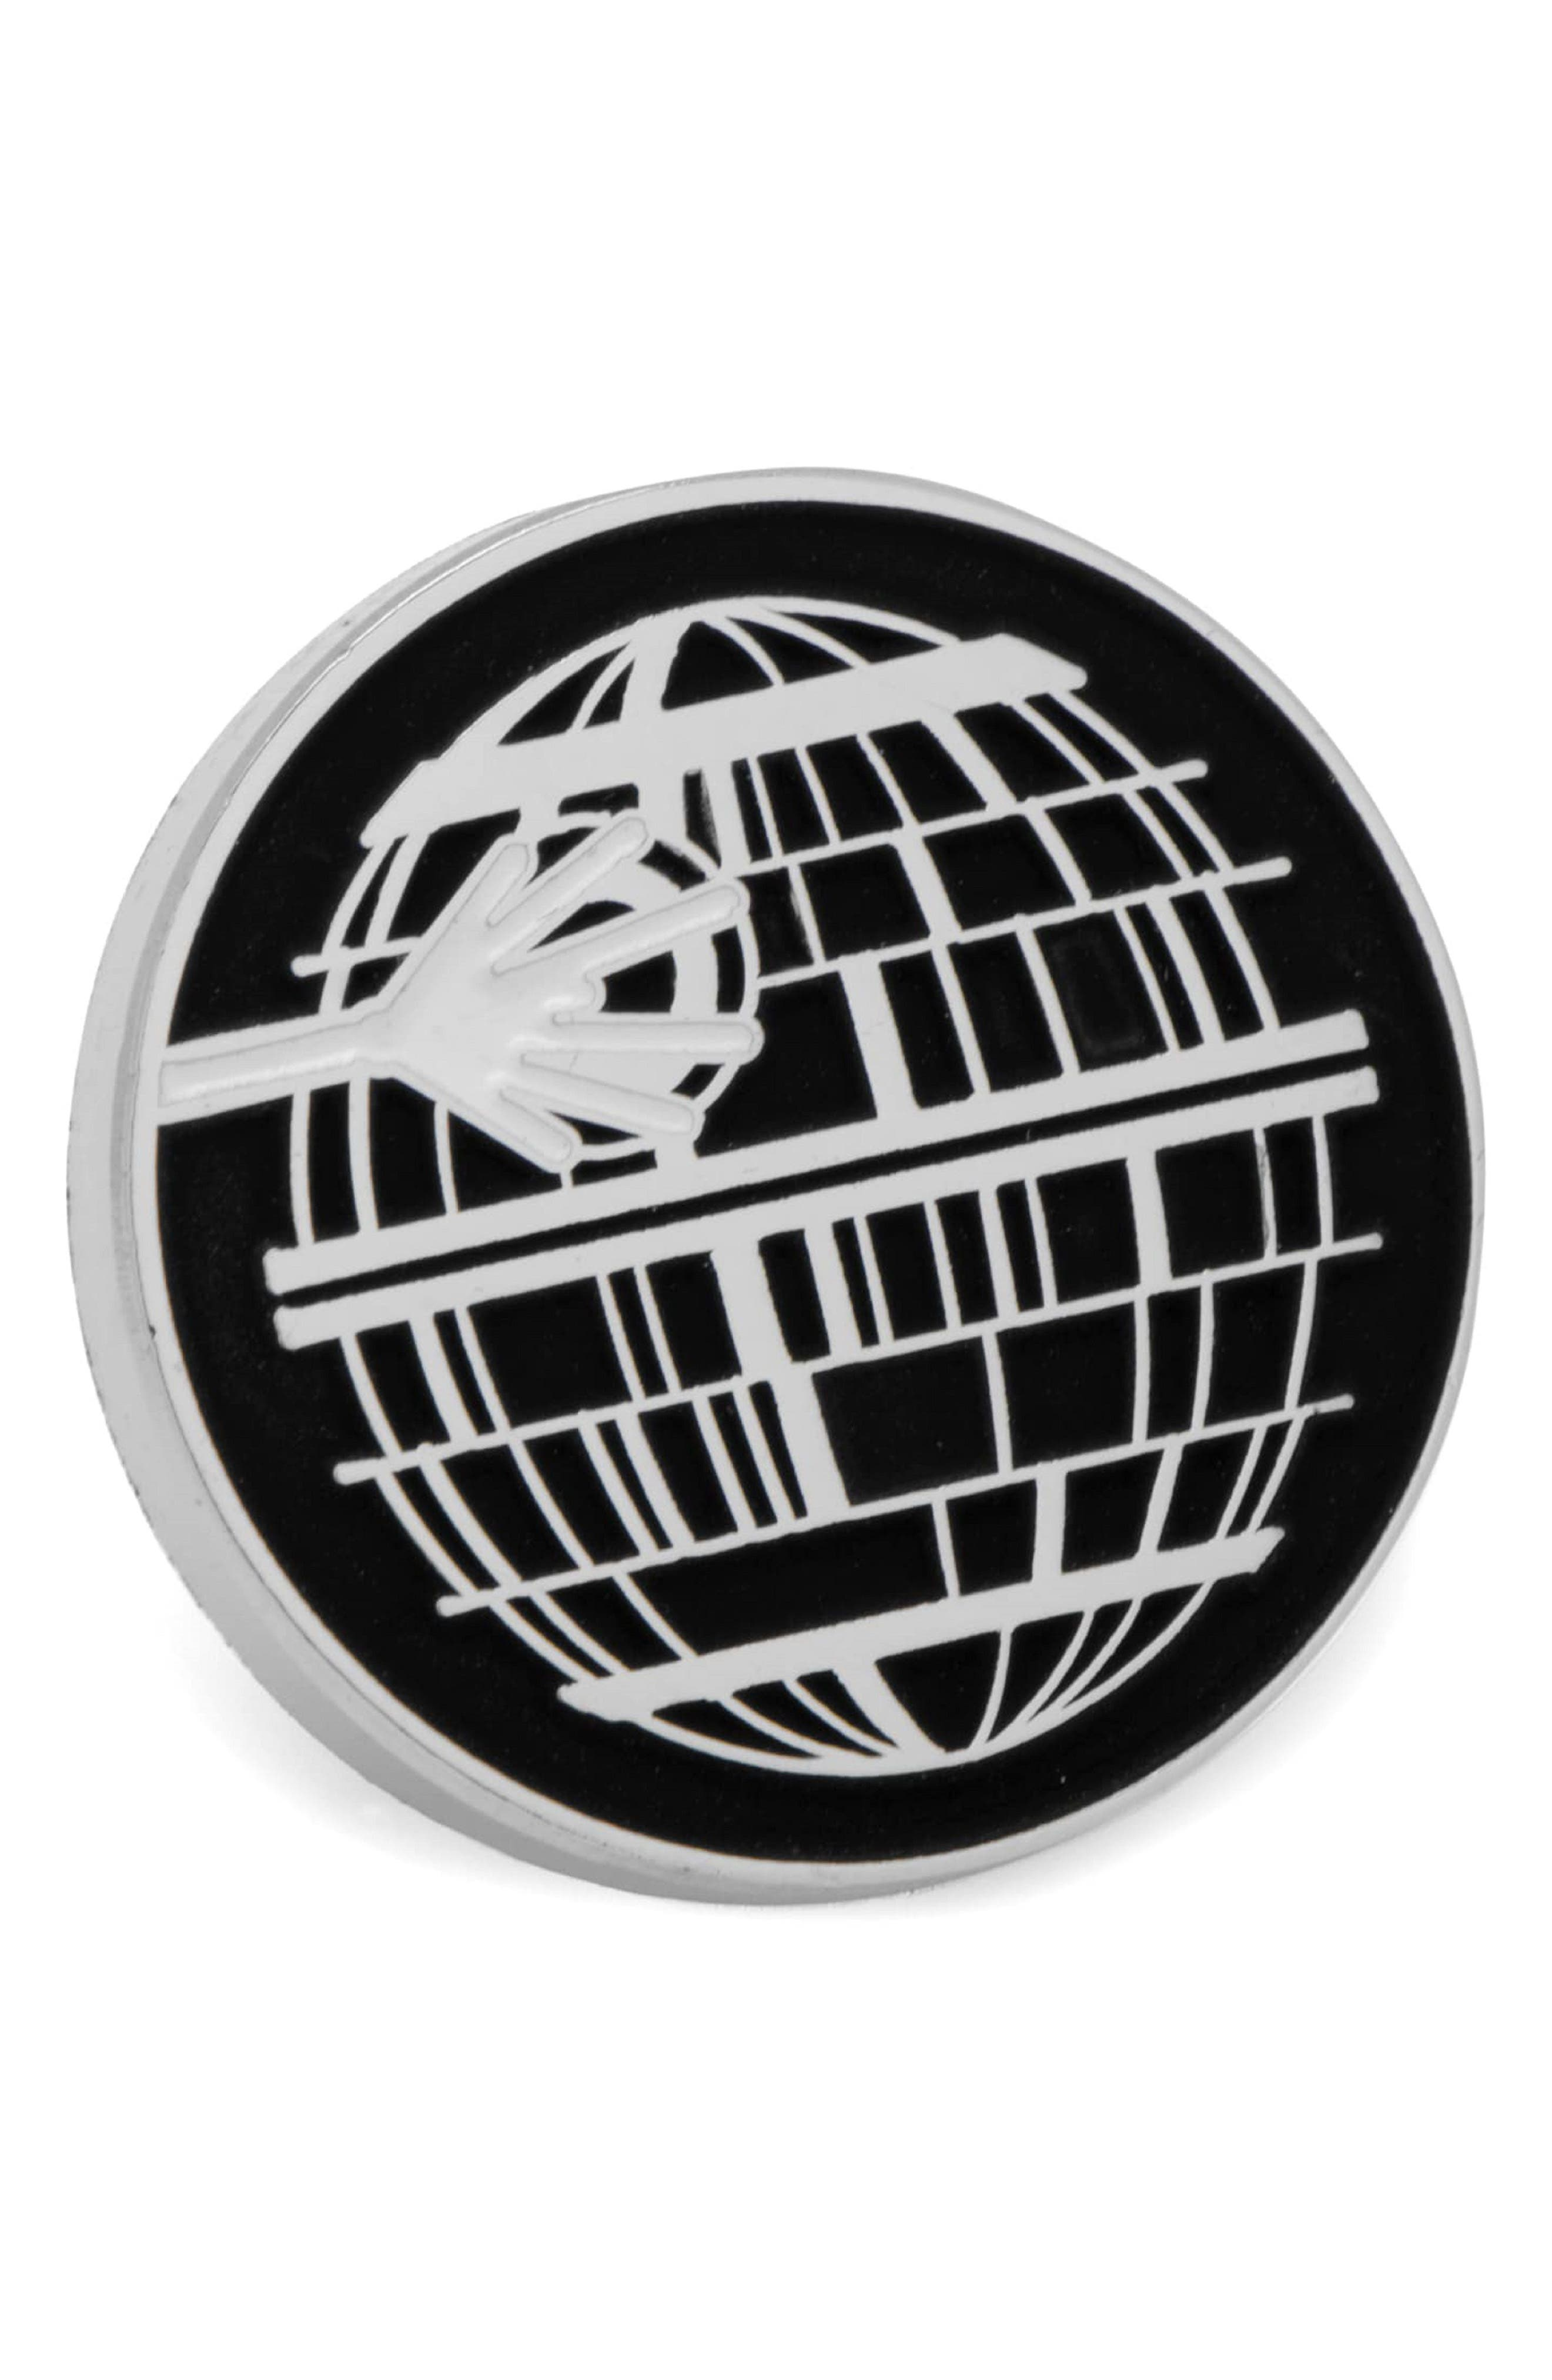 Star Wars<sup>™</sup> - Death Star Lapel Pin,                         Main,                         color, Silver